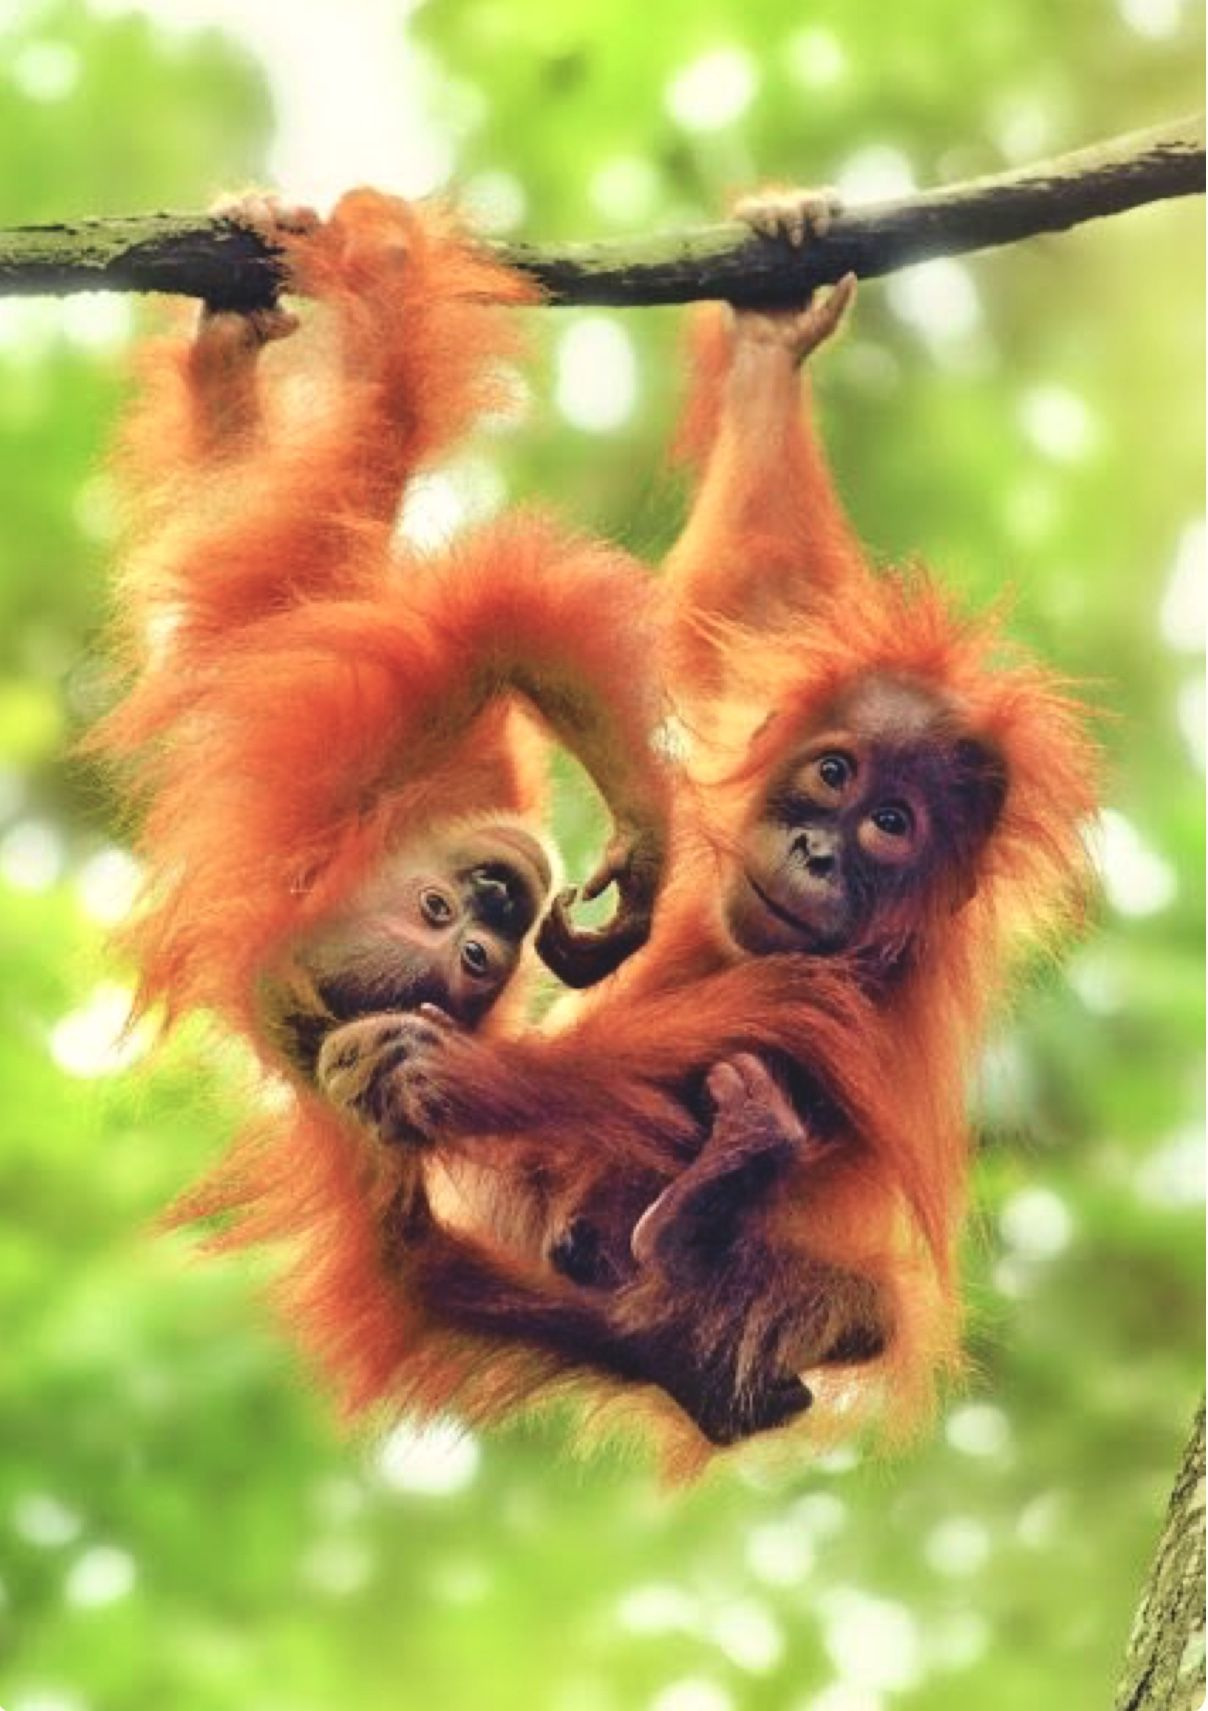 Adorable baby orangutans hanging from a branch. (With ...